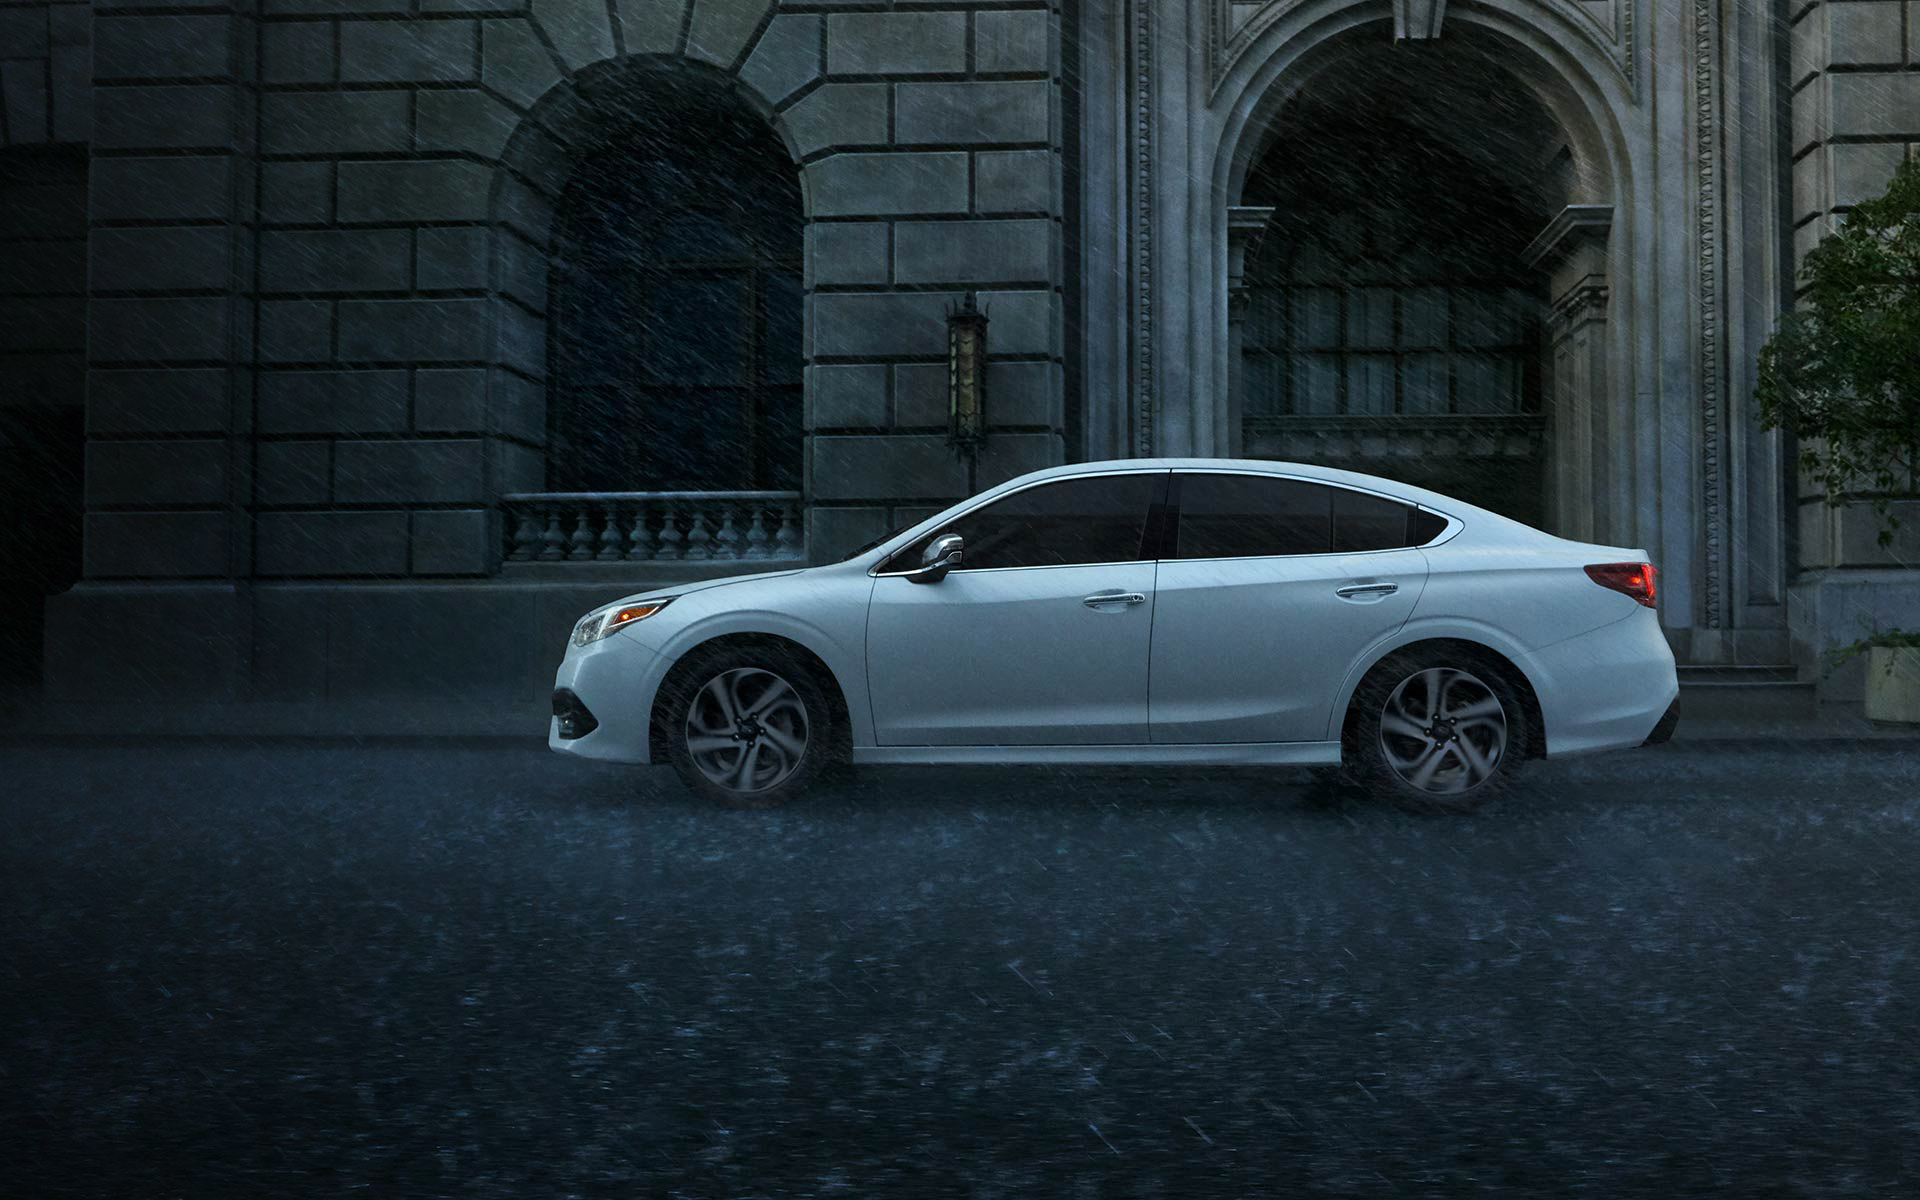 "Subaru Symmetrical All-Wheel Drive + 35 MPG<a class='disclaimer-link' data-toggle='popover' data-placement='bottom' data-content=""Based on manufacturer's estimated EPA fuel economy. Your mileage may vary.""><sup>[2]</sup></a>"